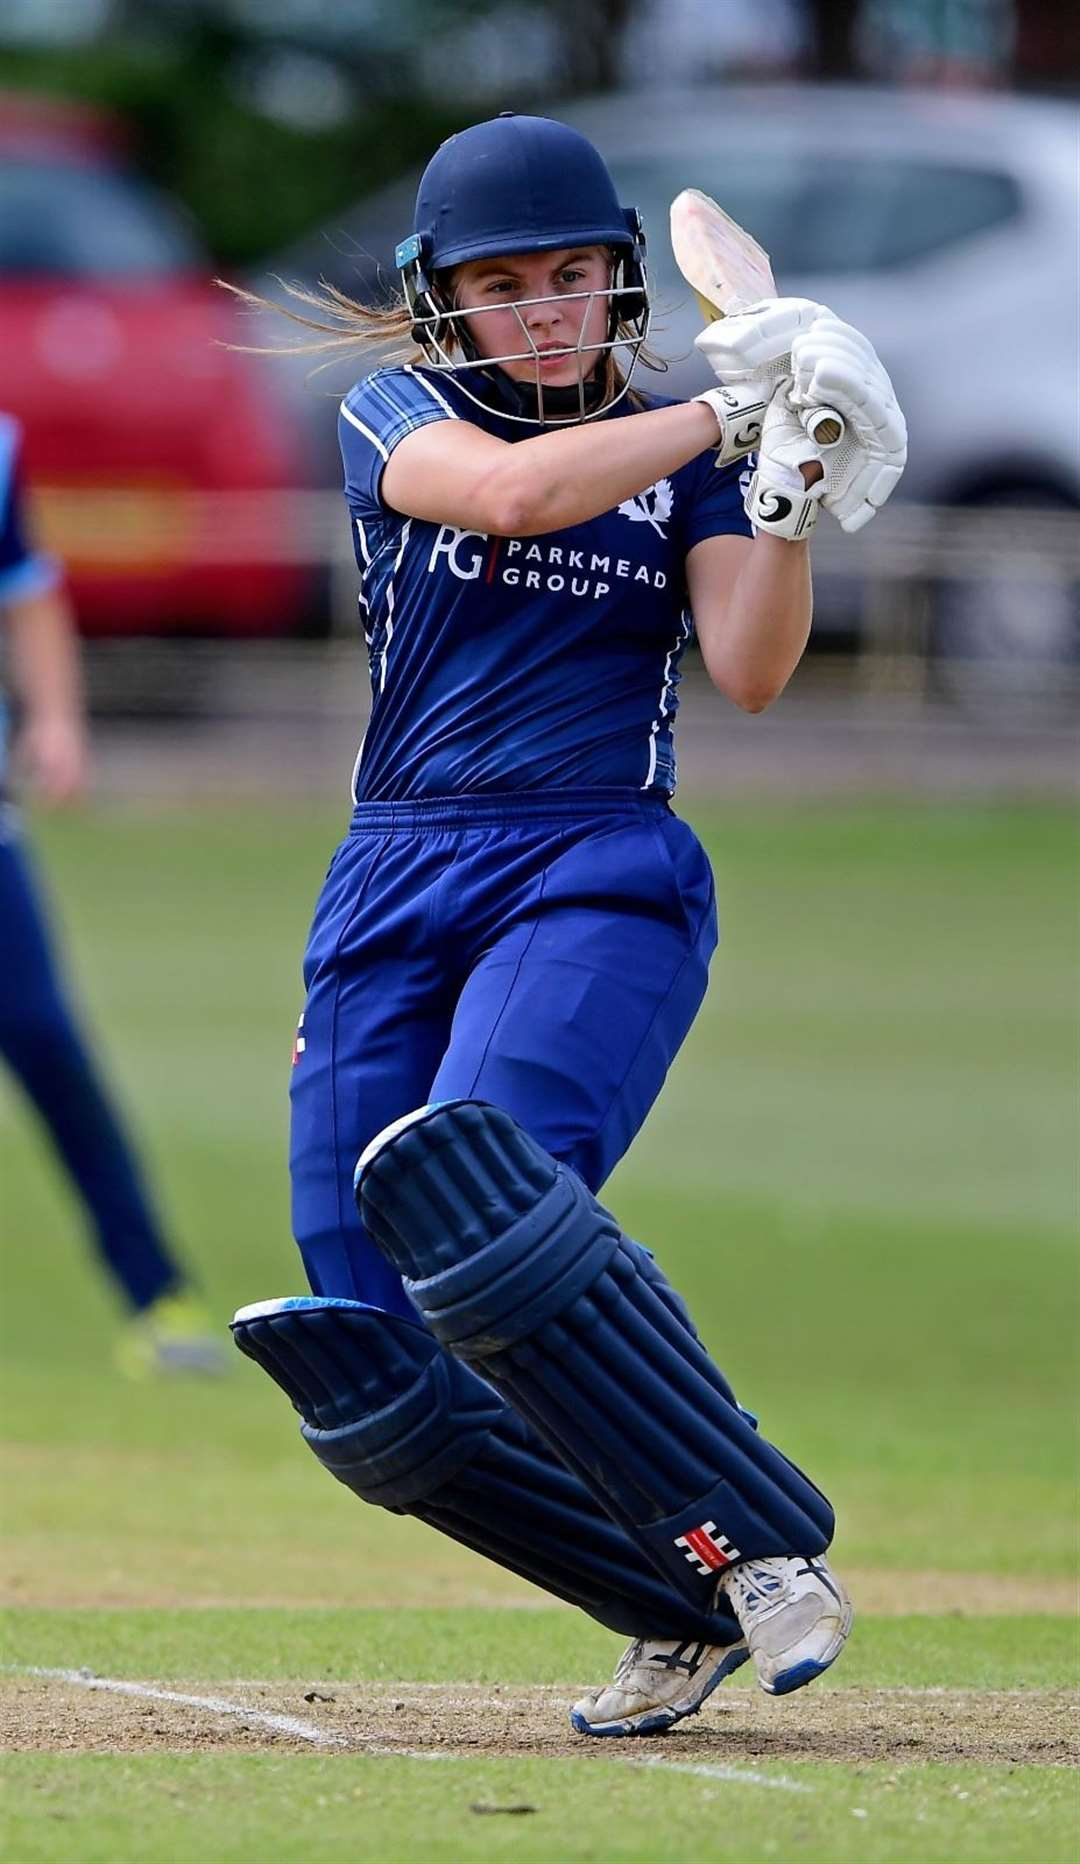 Ailsa Lister smashed her first century at a regional match at her hometown Huntly ground.